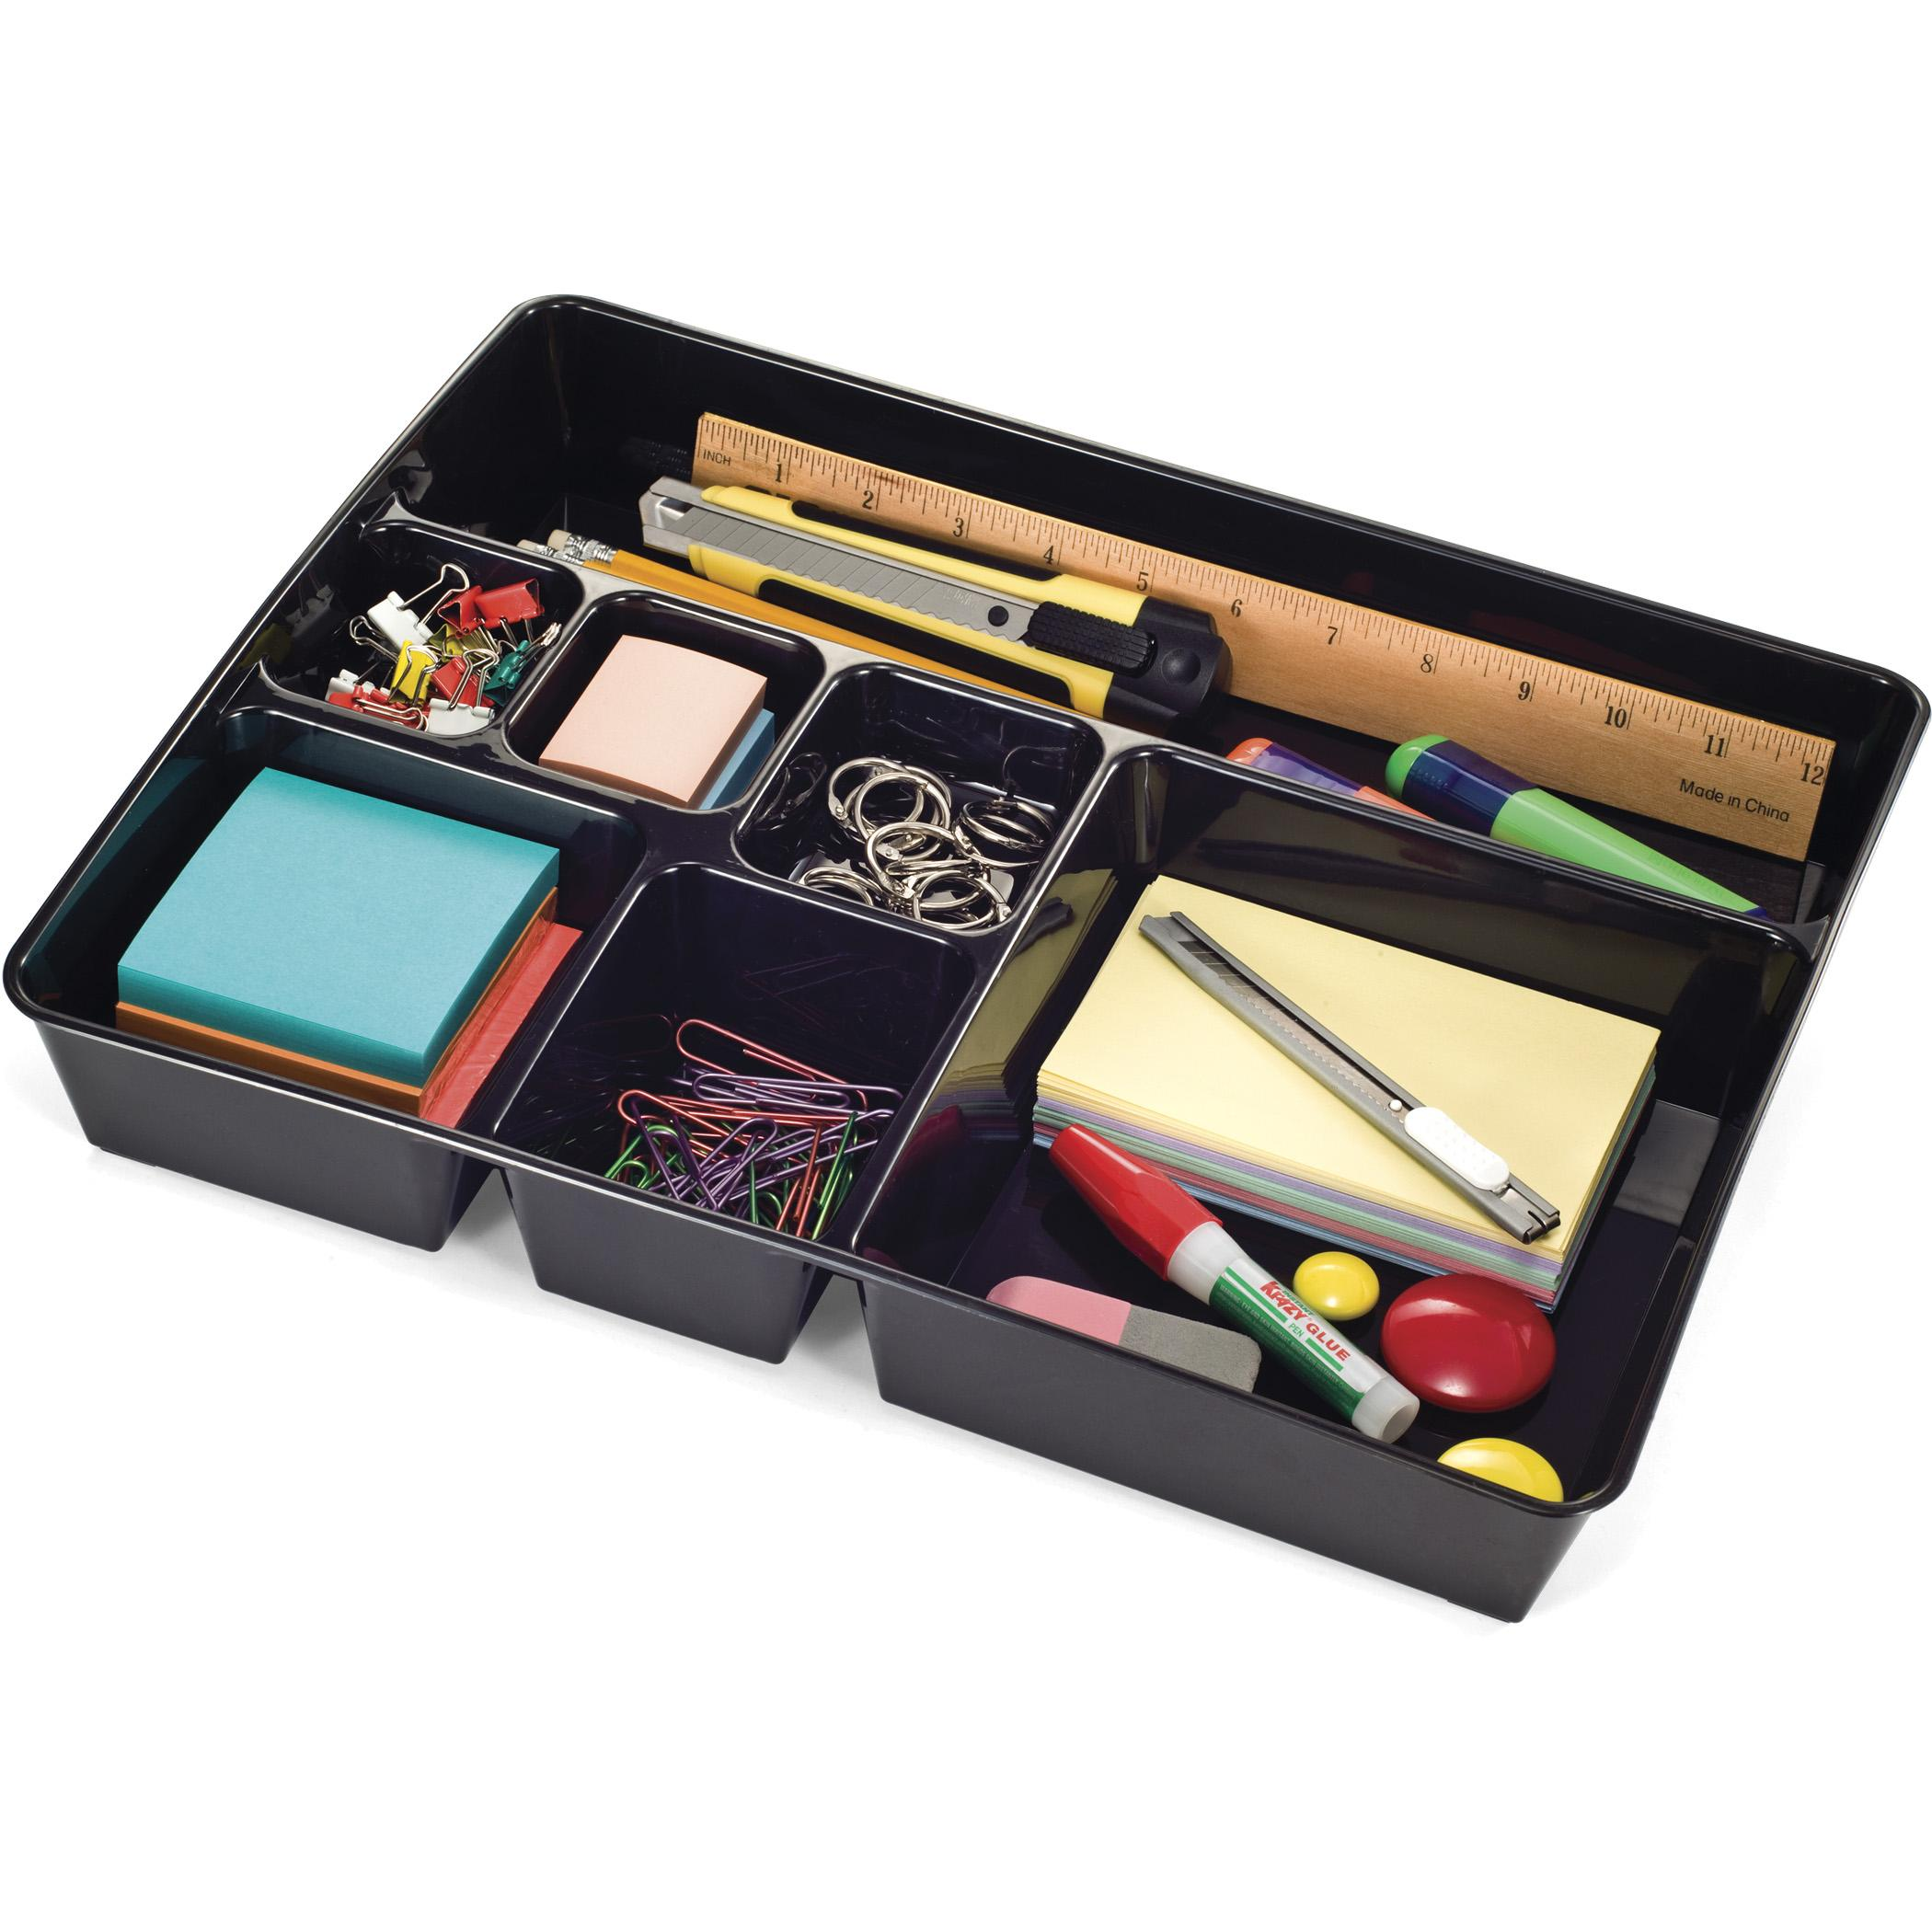 View larger - Desk drawer organizer ...